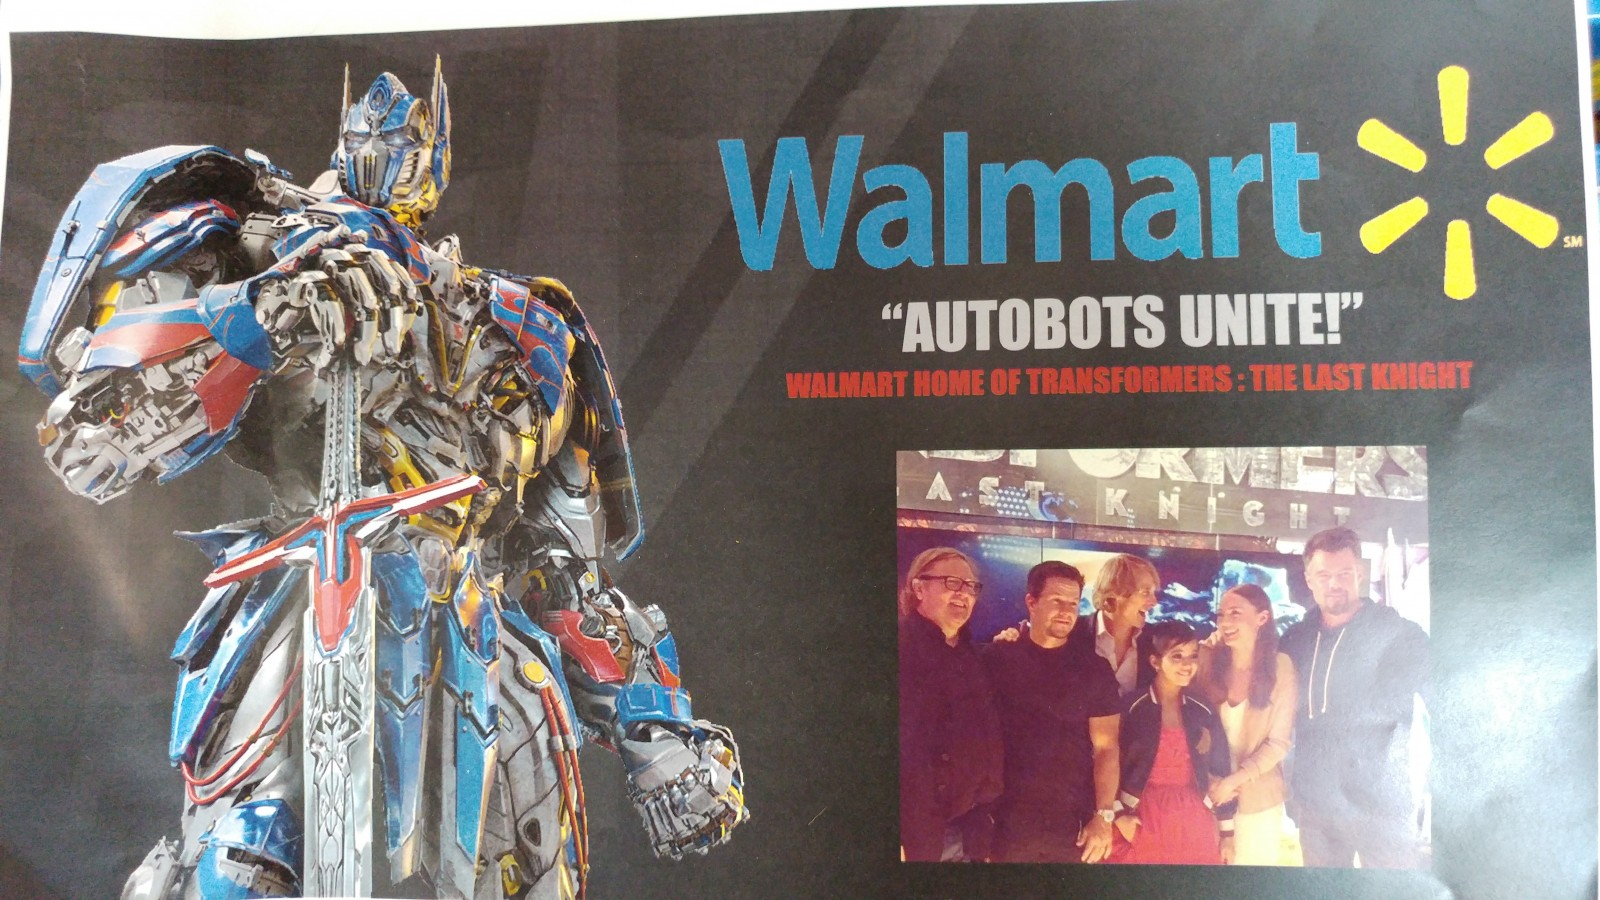 Transformers News: Walmart Autobots Unite Transformers: The Last Knight Exclusive Promo Tour Info